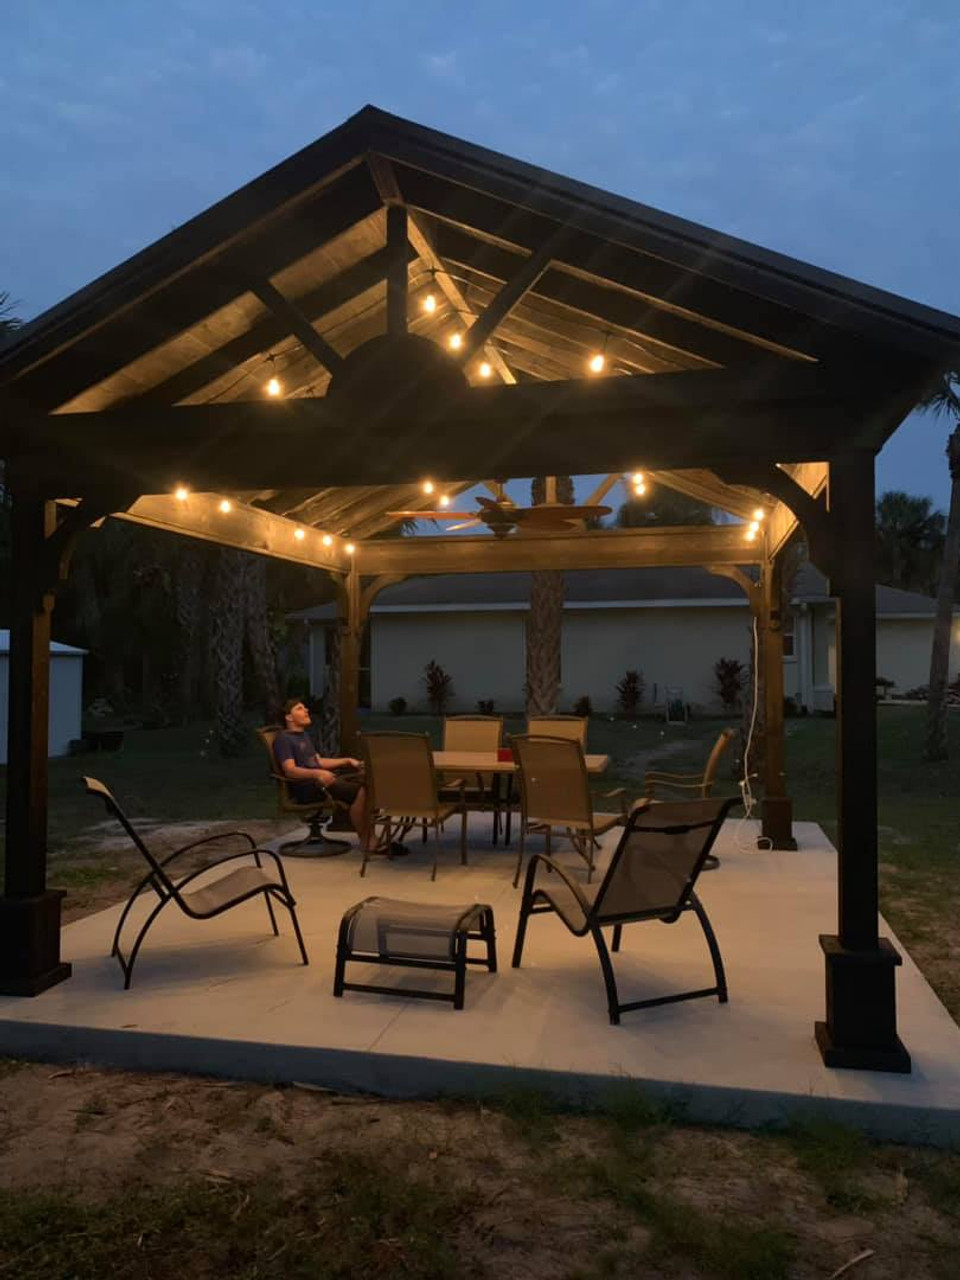 13x15 Cedar Gable Pavilion Kit Port Charlotte Florida night time idea